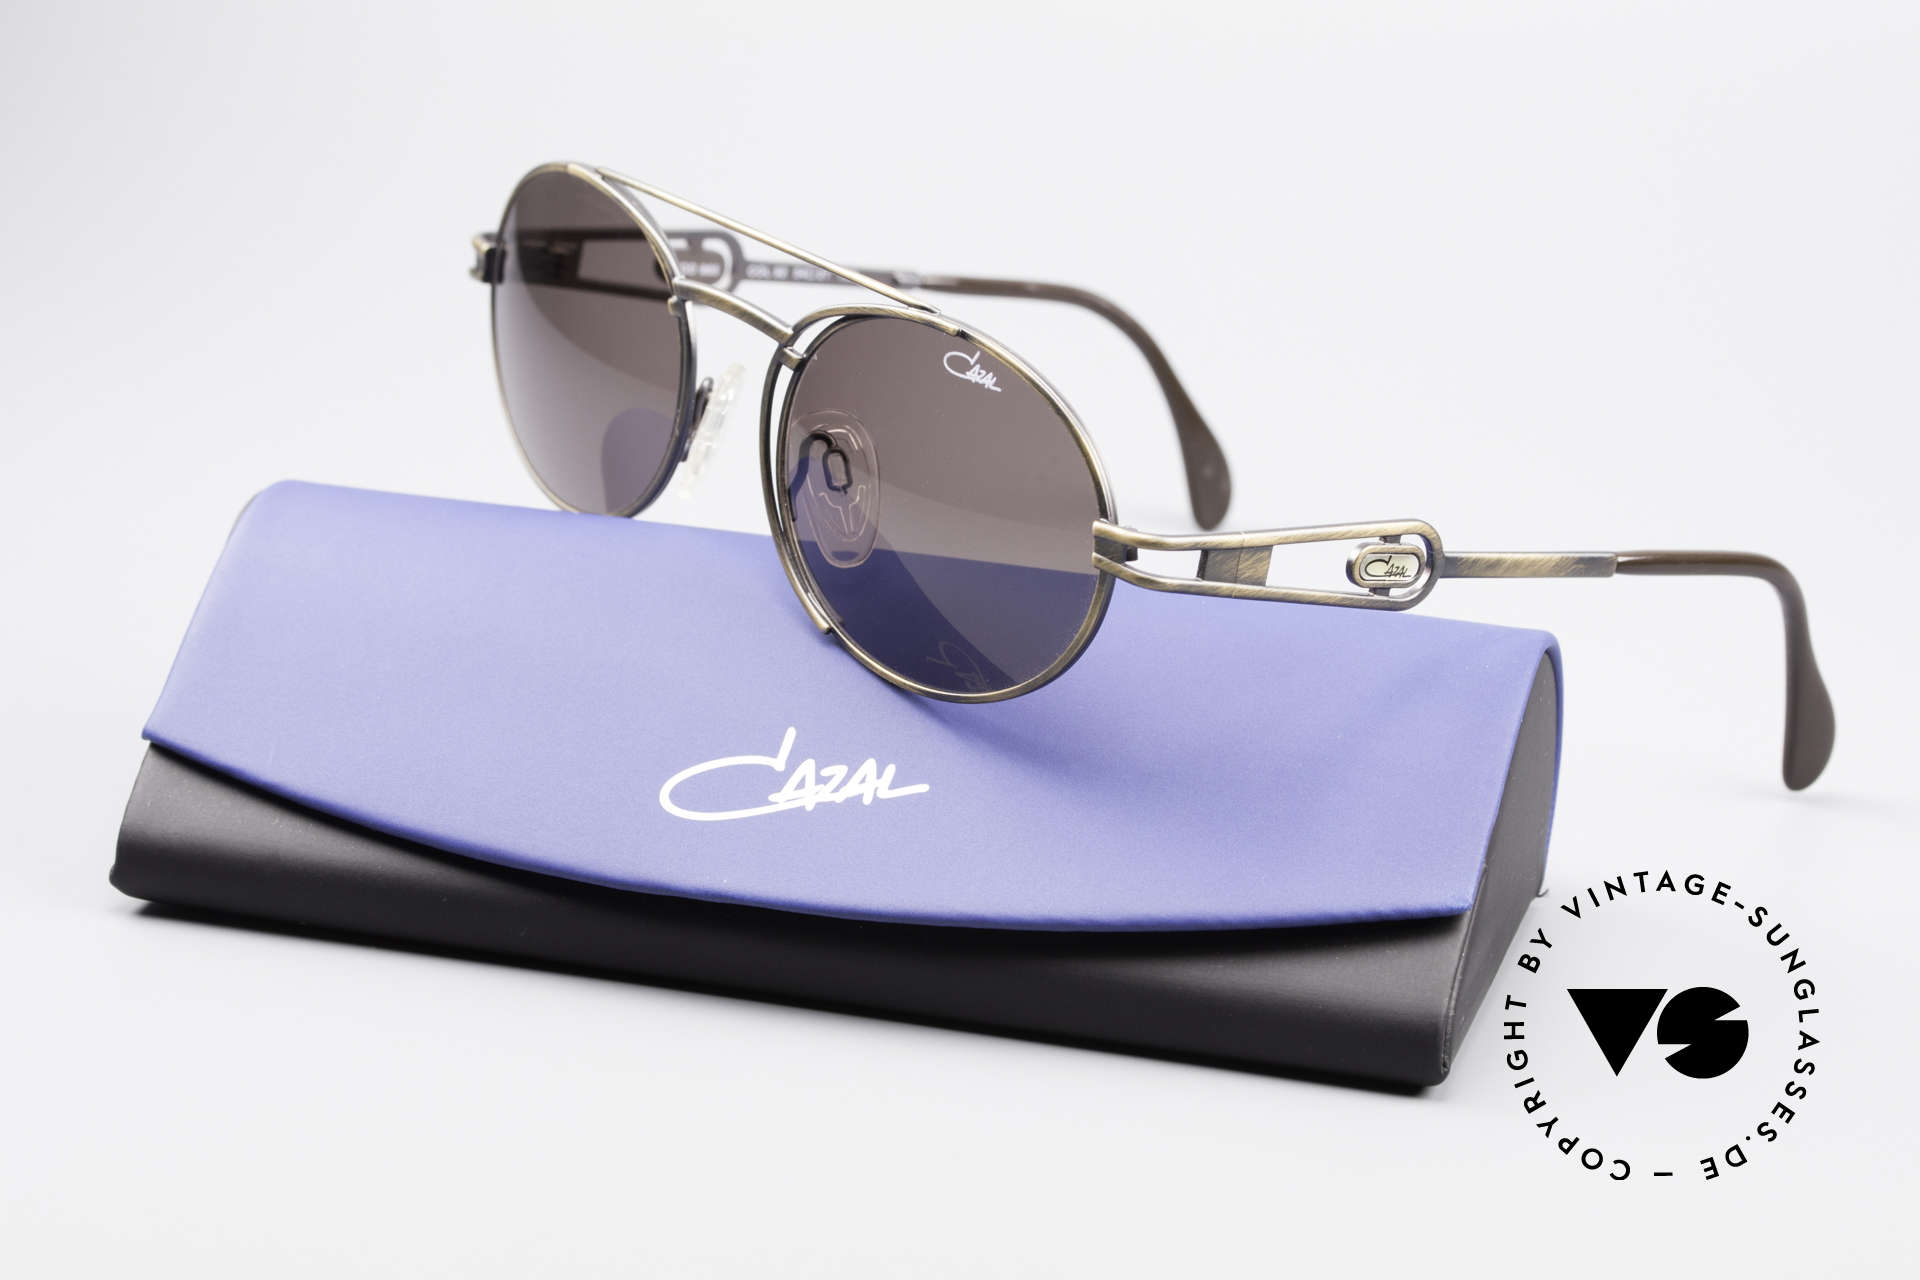 Cazal 965 Oval Steampunk Style Shades, Size: large, Made for Men and Women